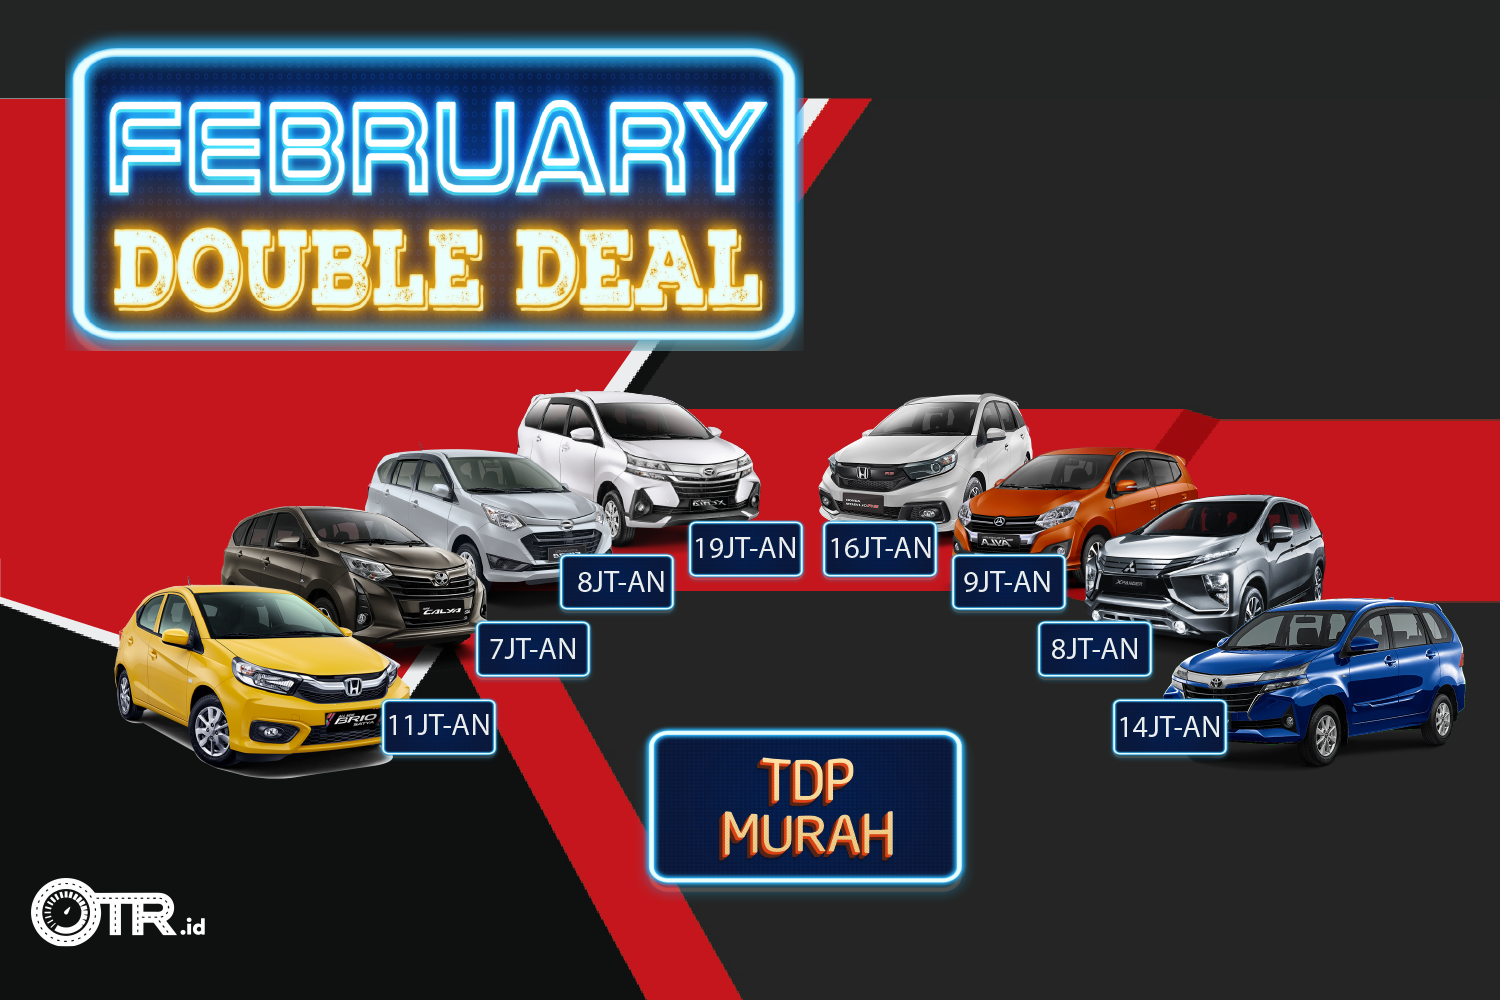 Promo February DP Murah Double Deal OTR.id